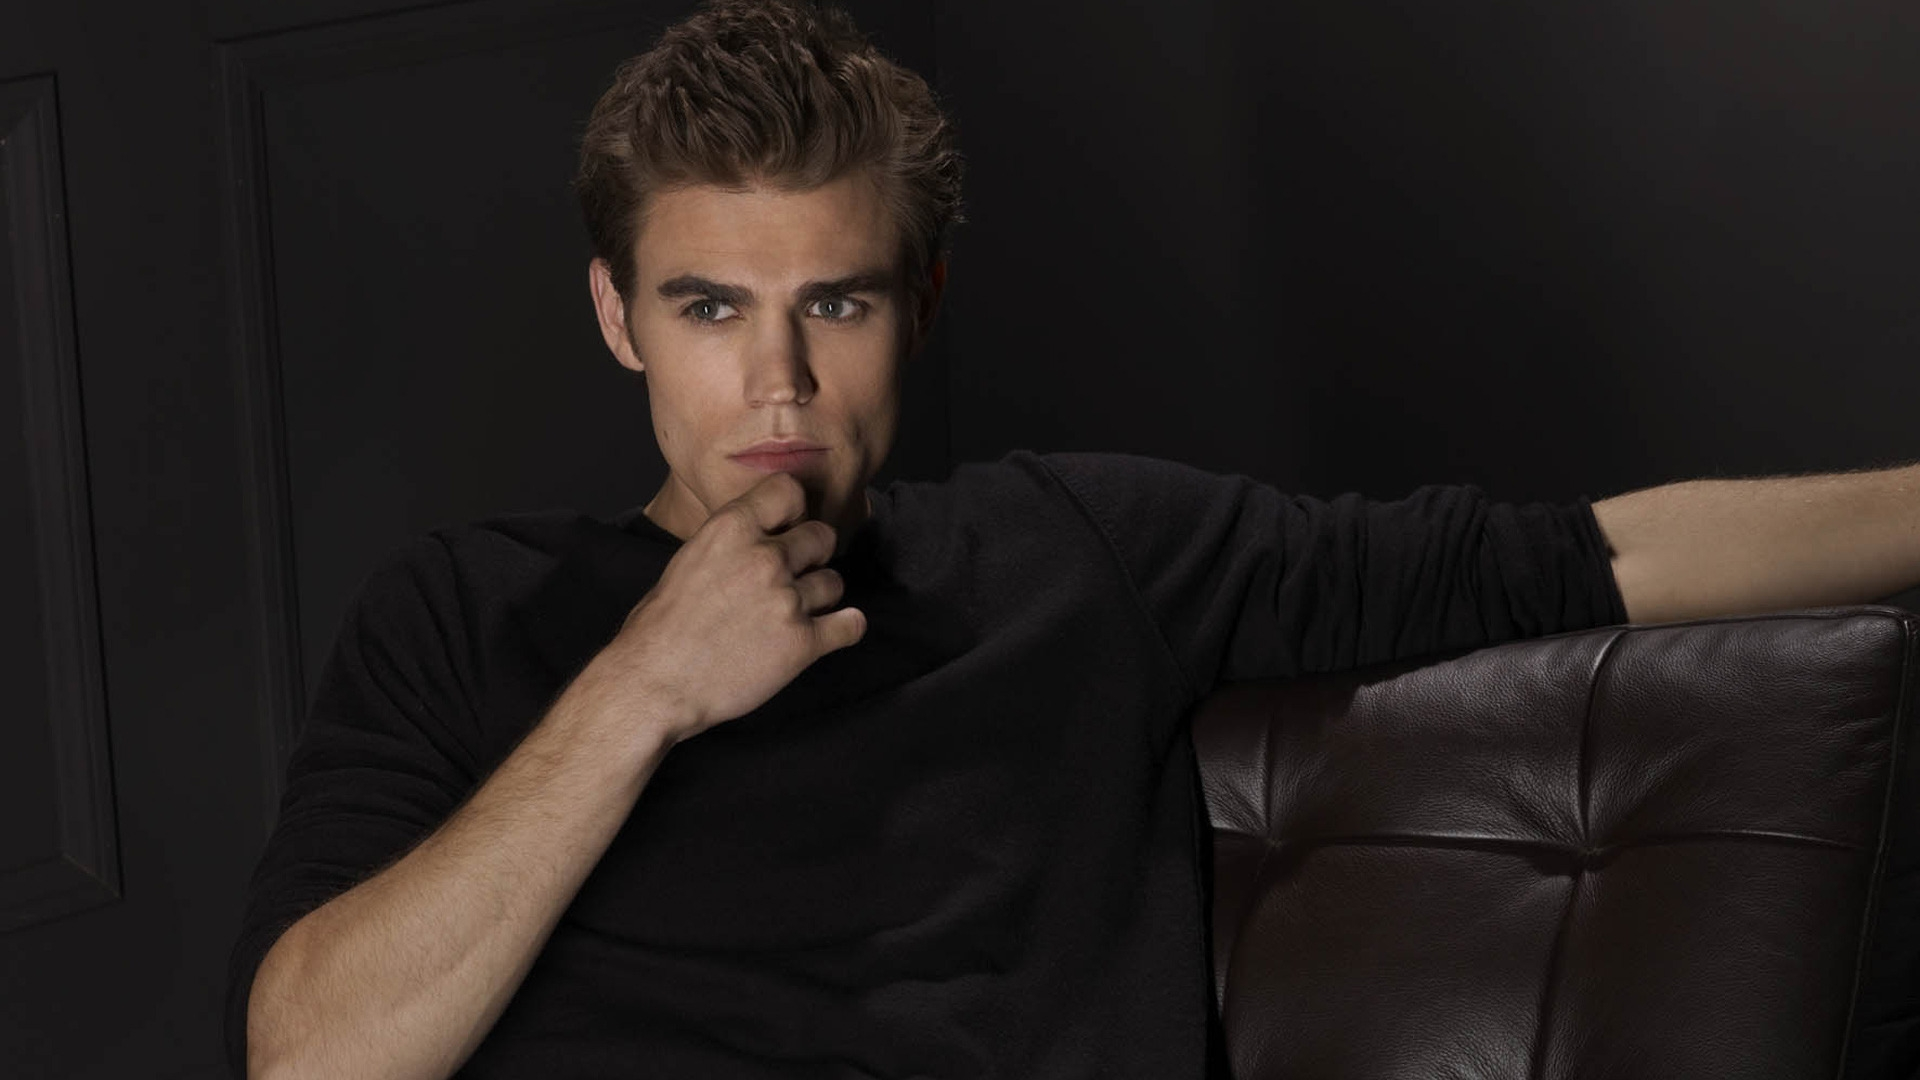 Paul Wesley for 1920 x 1080 HDTV 1080p resolution